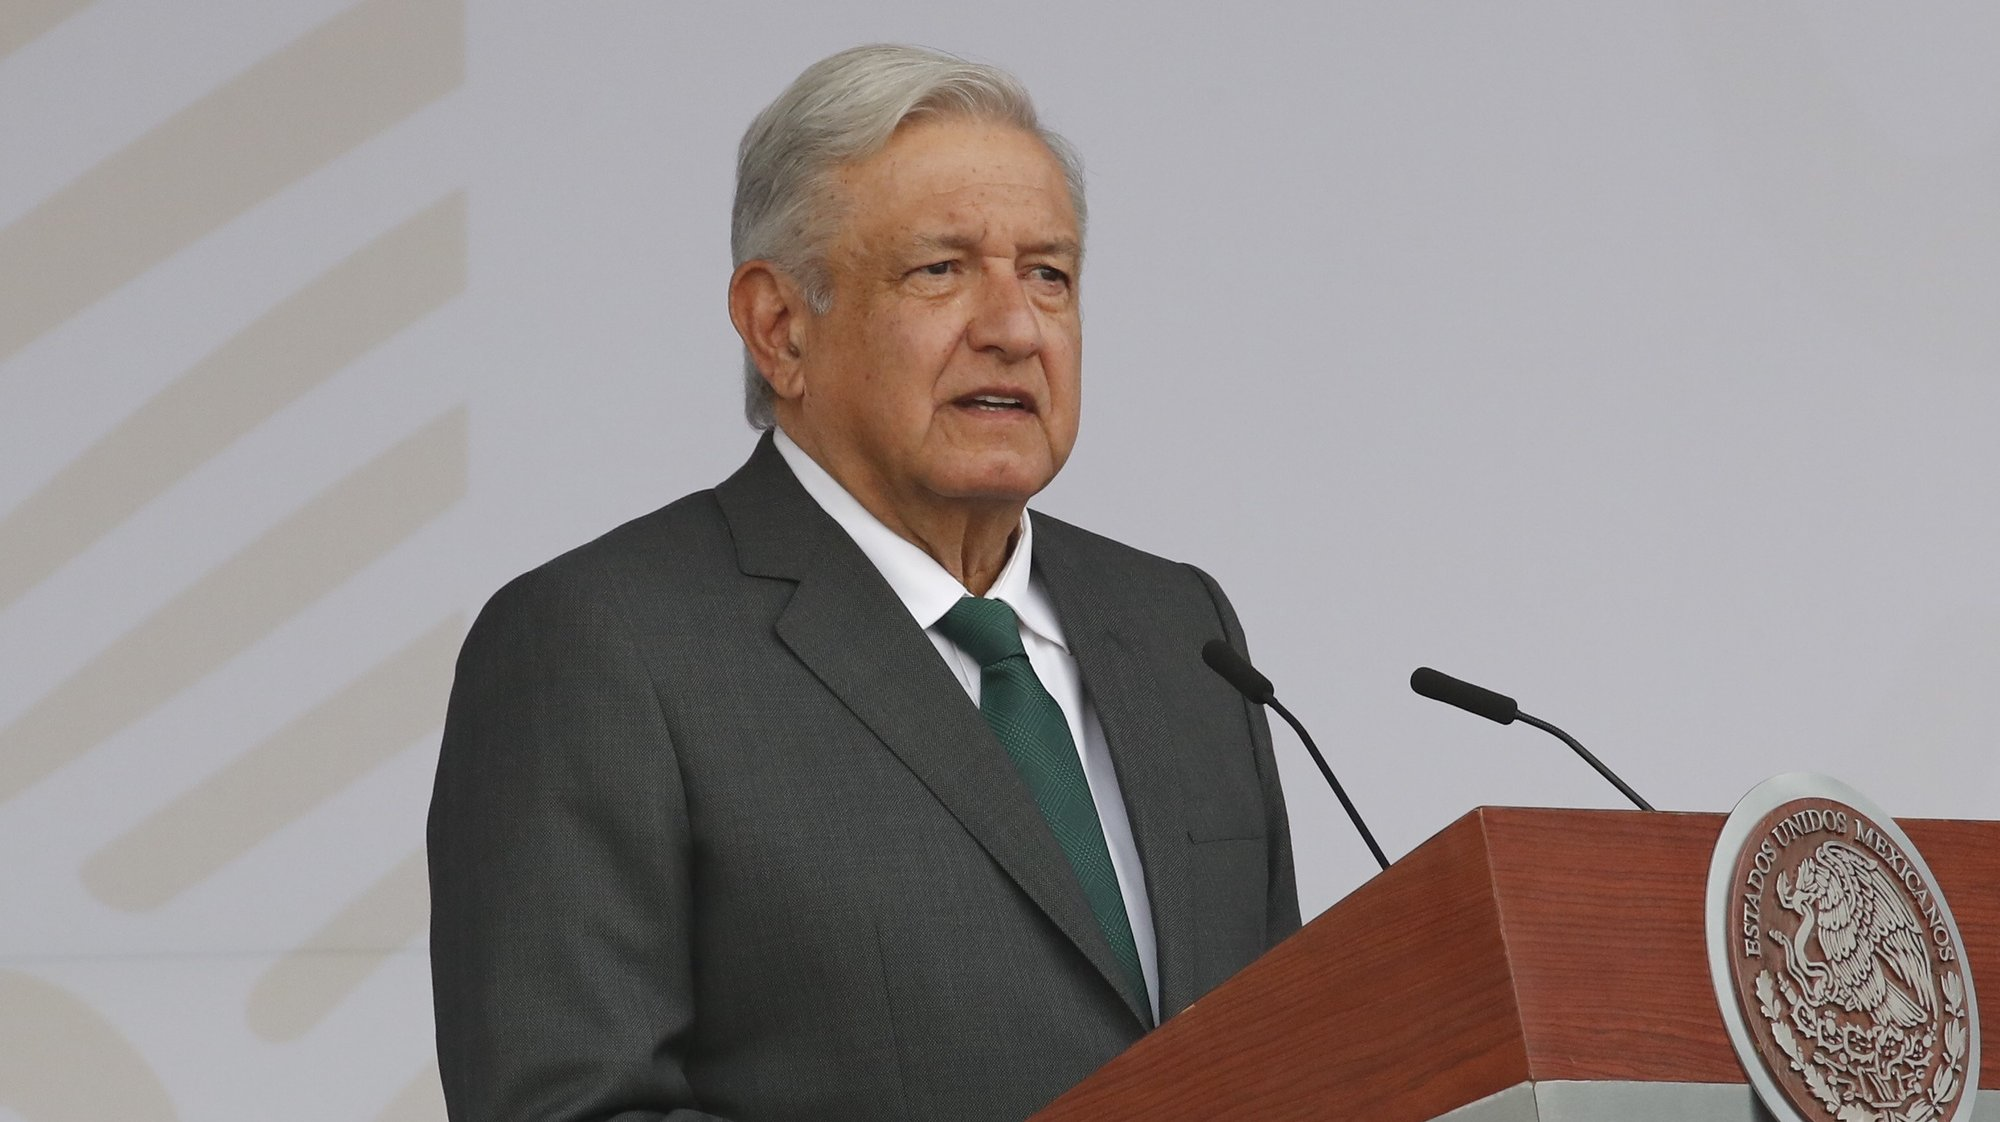 epa09471734 Mexican President Andres Manuel Lopez Obrador participates in a military parade organized to mark the 211th anniversary of Mexico's independence from Spain, in the Zocalo square of Mexico City, Mexico, 16 September 2021.  EPA/Jose Mendez